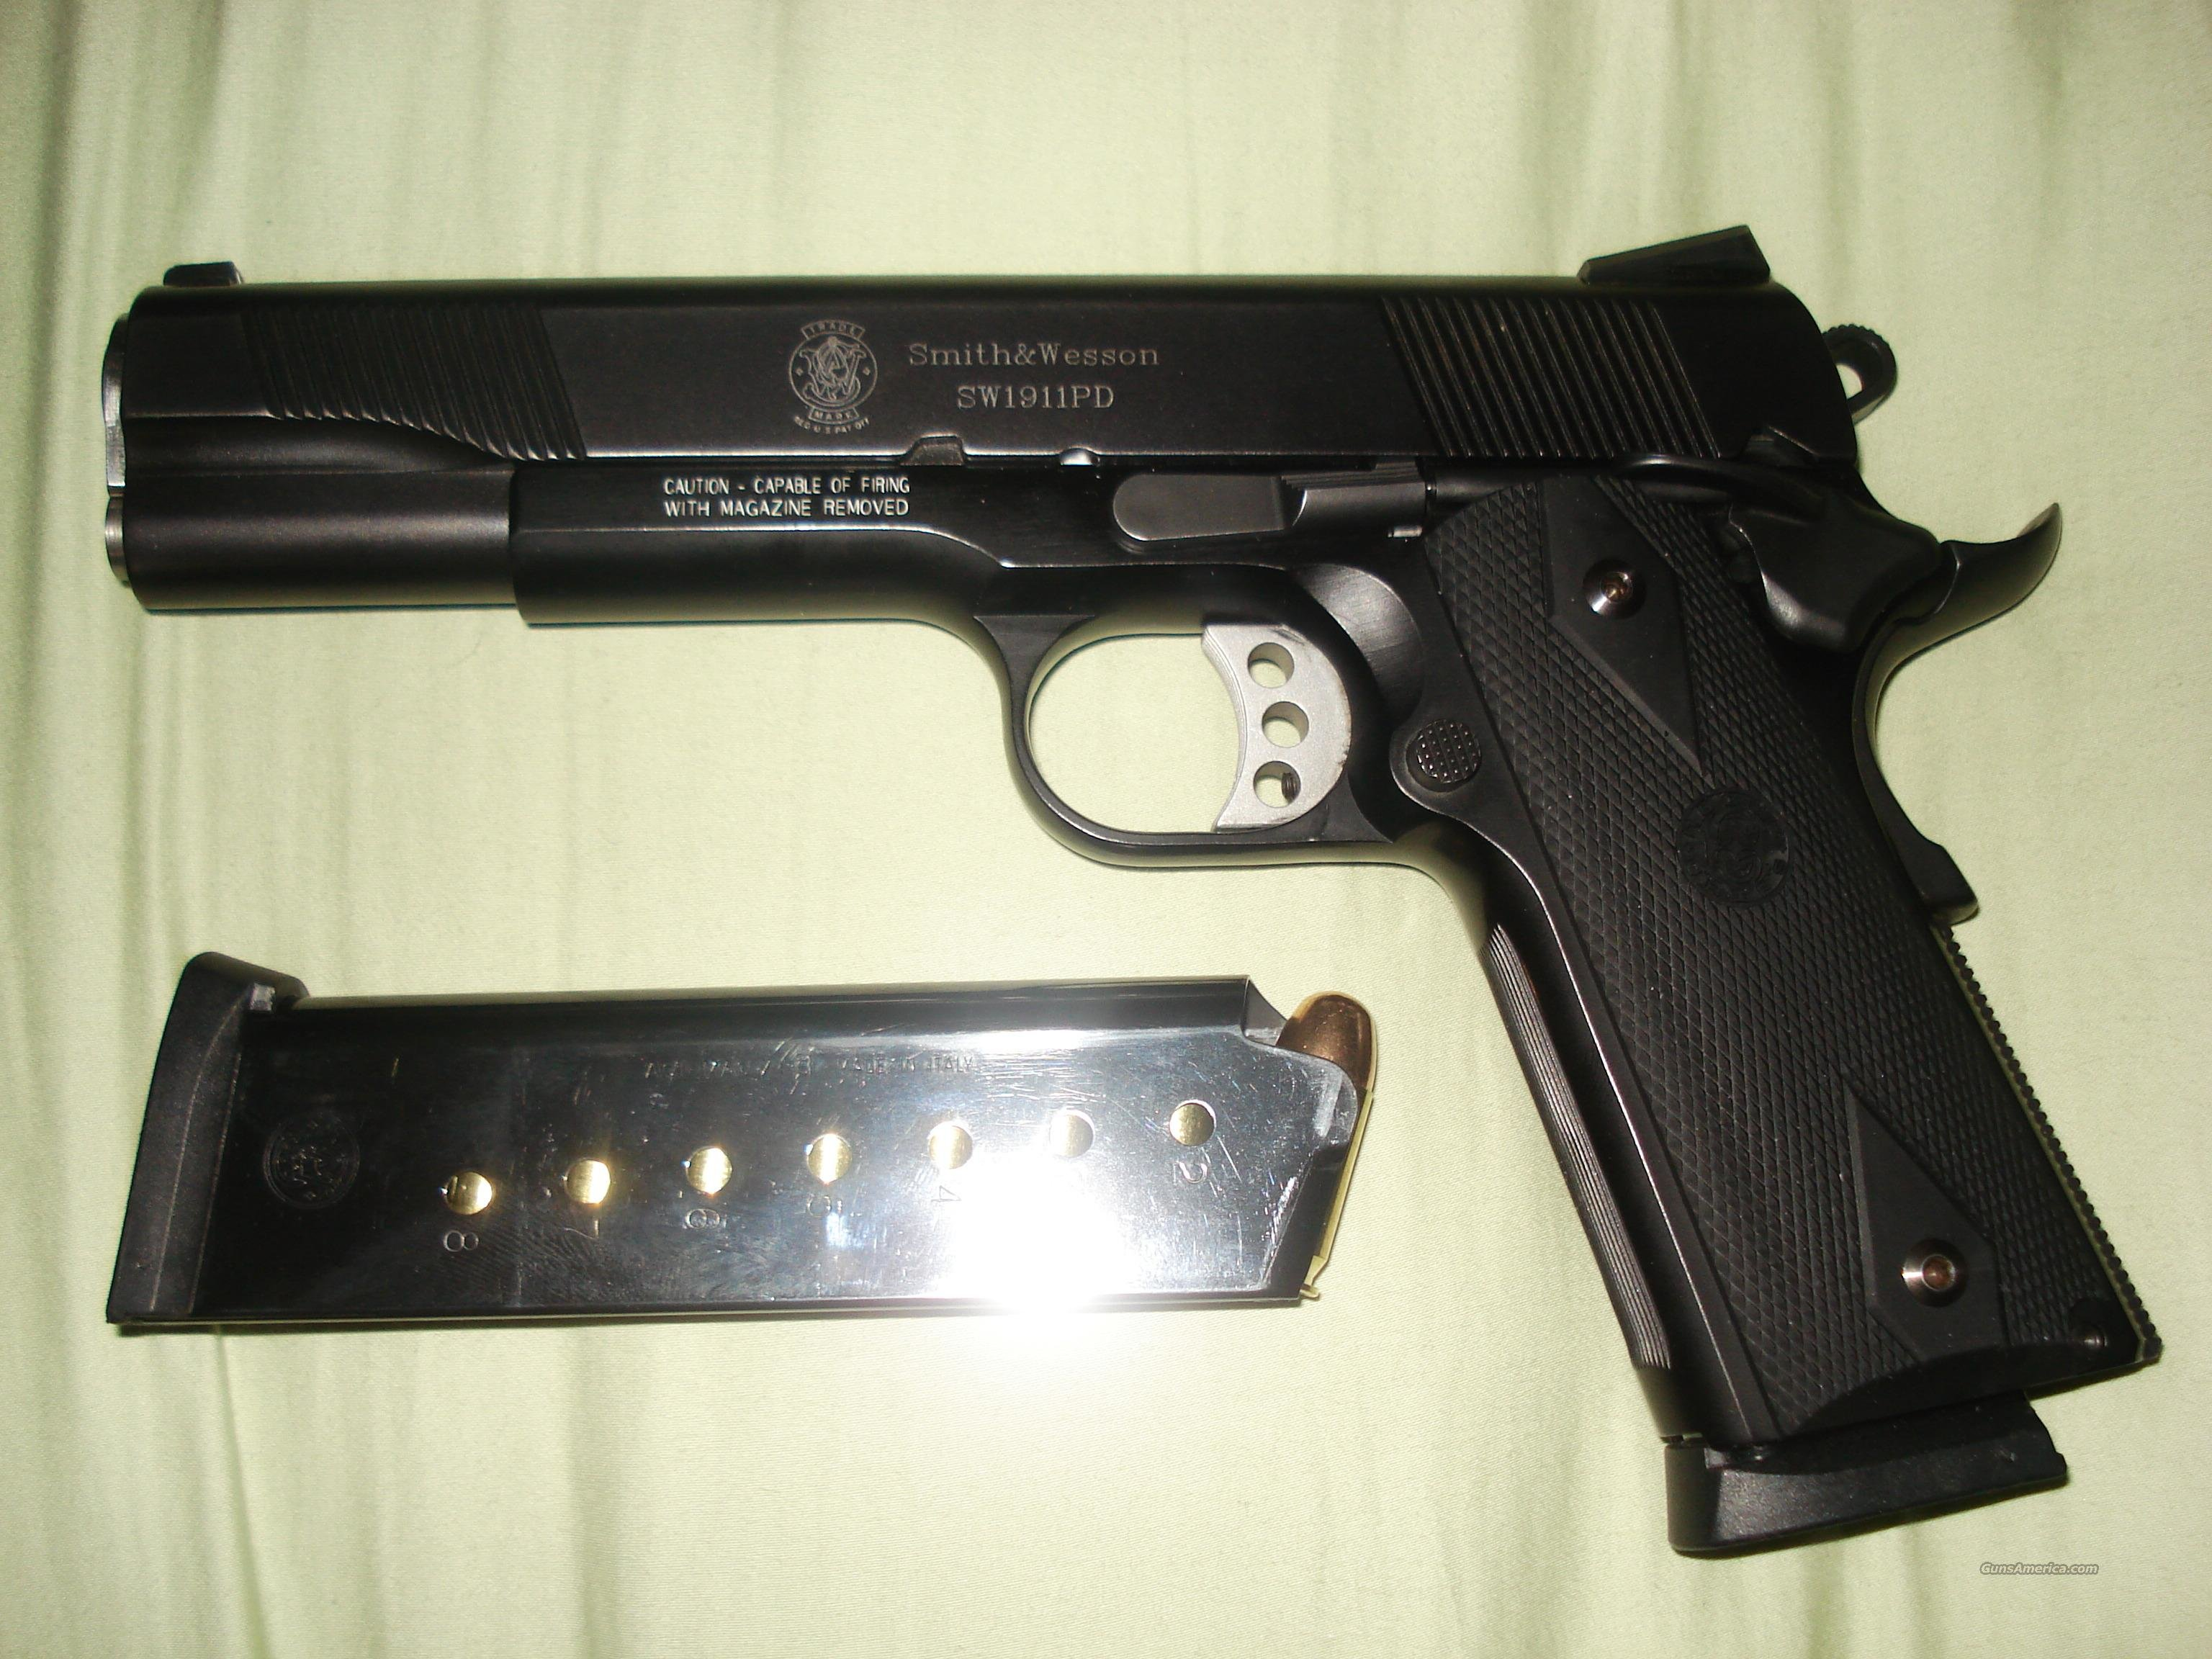 Smith and Wesson 1911PD  Guns > Pistols > 1911 Pistol Copies (non-Colt)